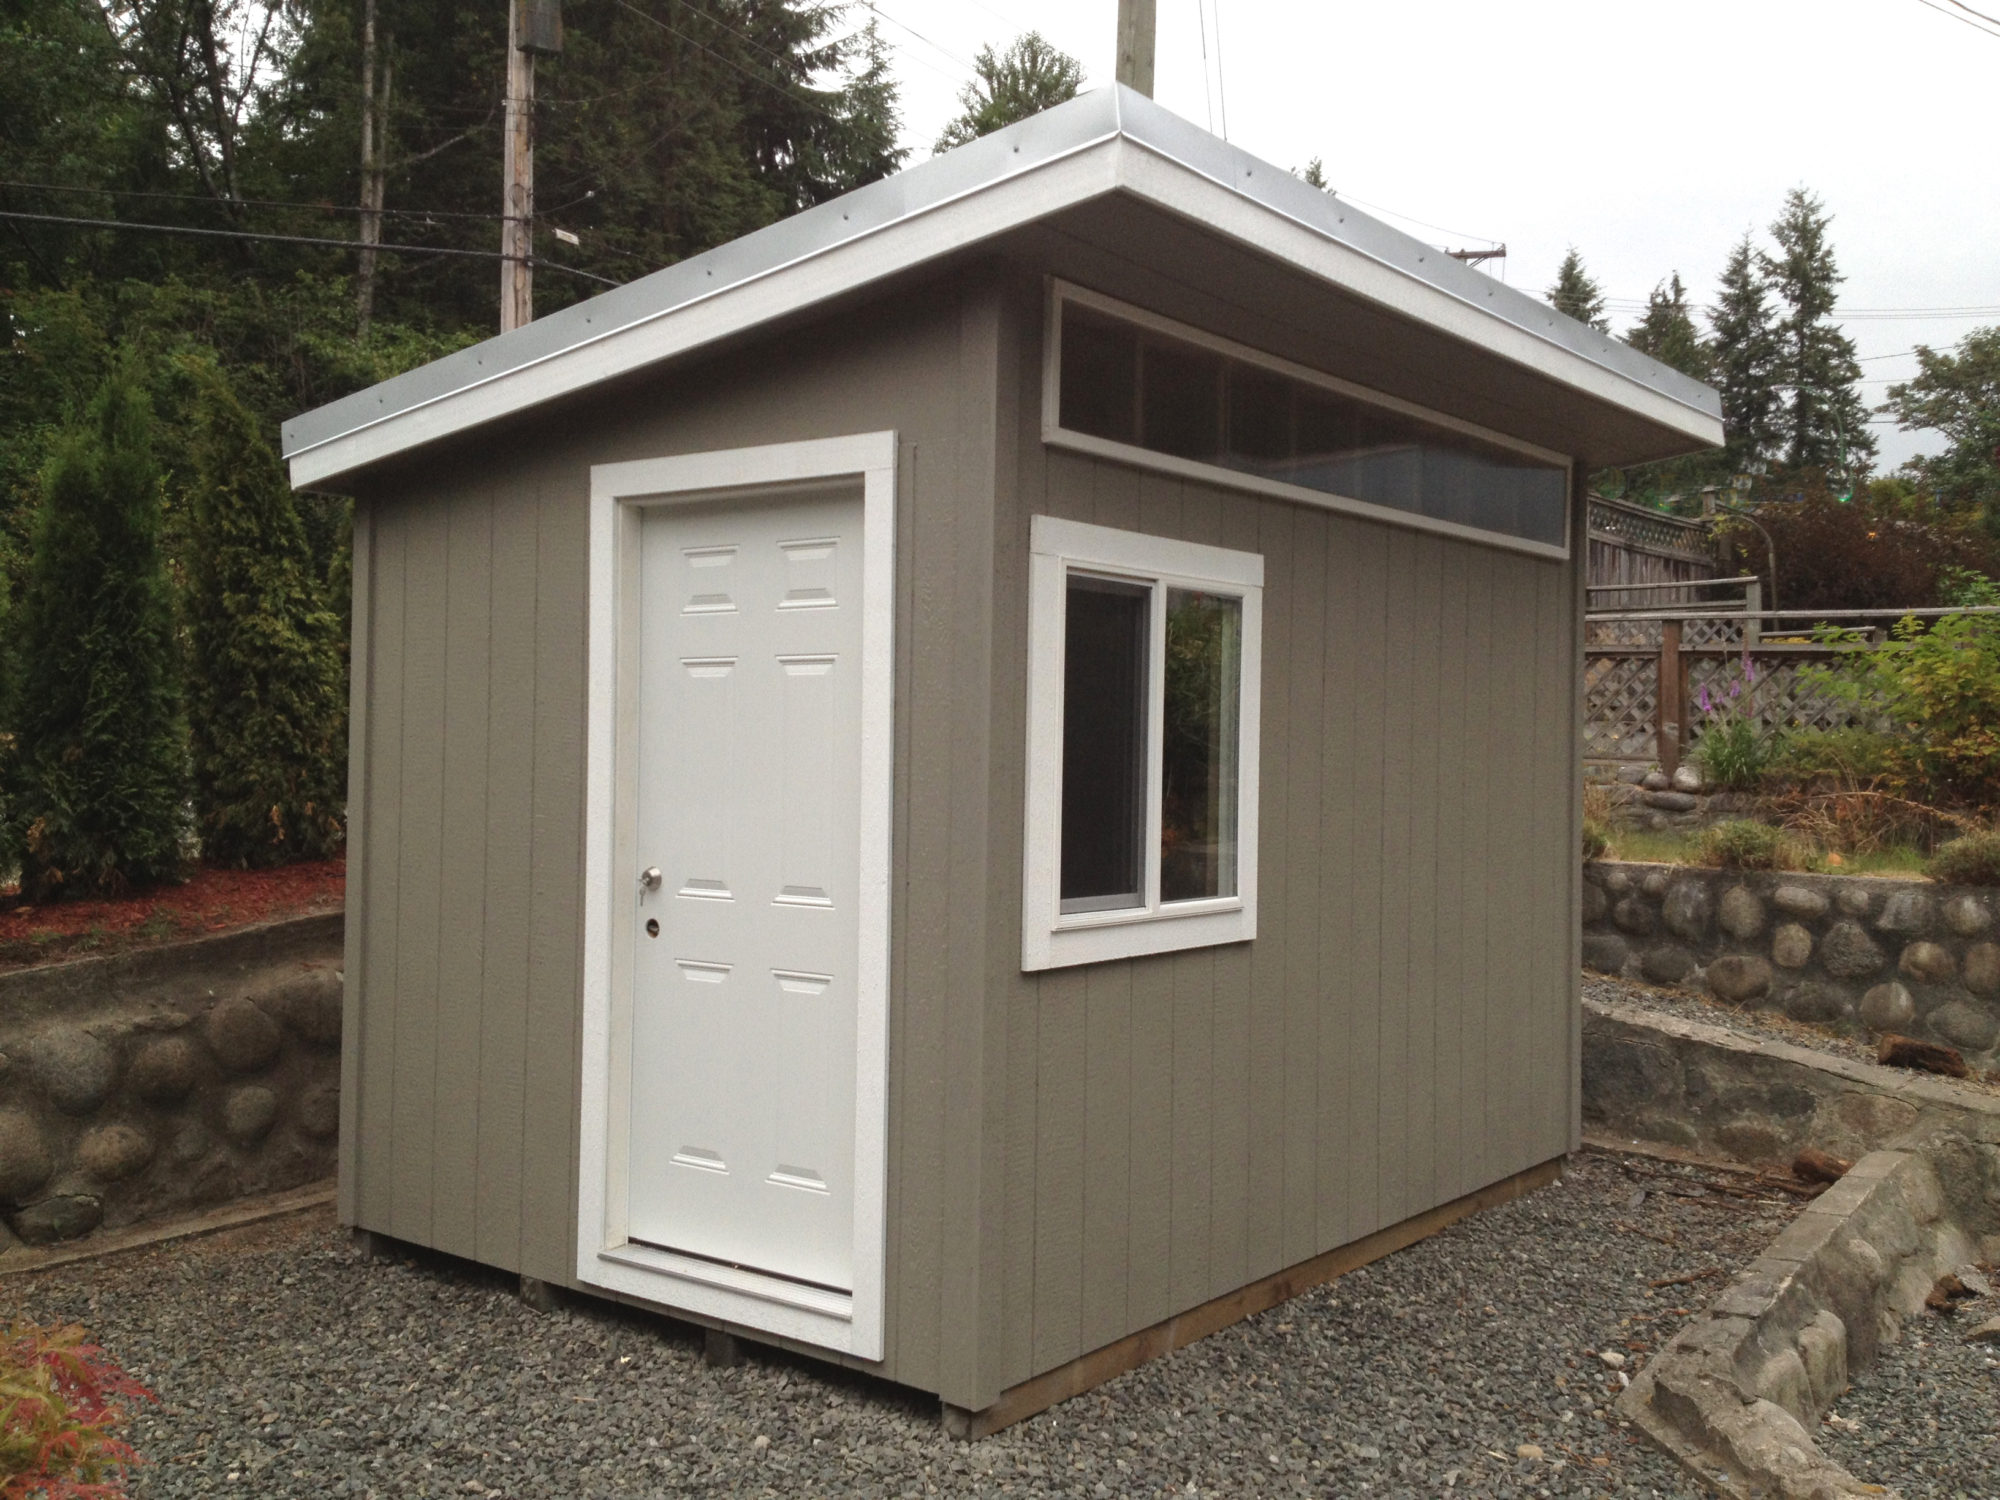 Cool Sheds Archives Westcoast Outbuildings: outbuildings and sheds